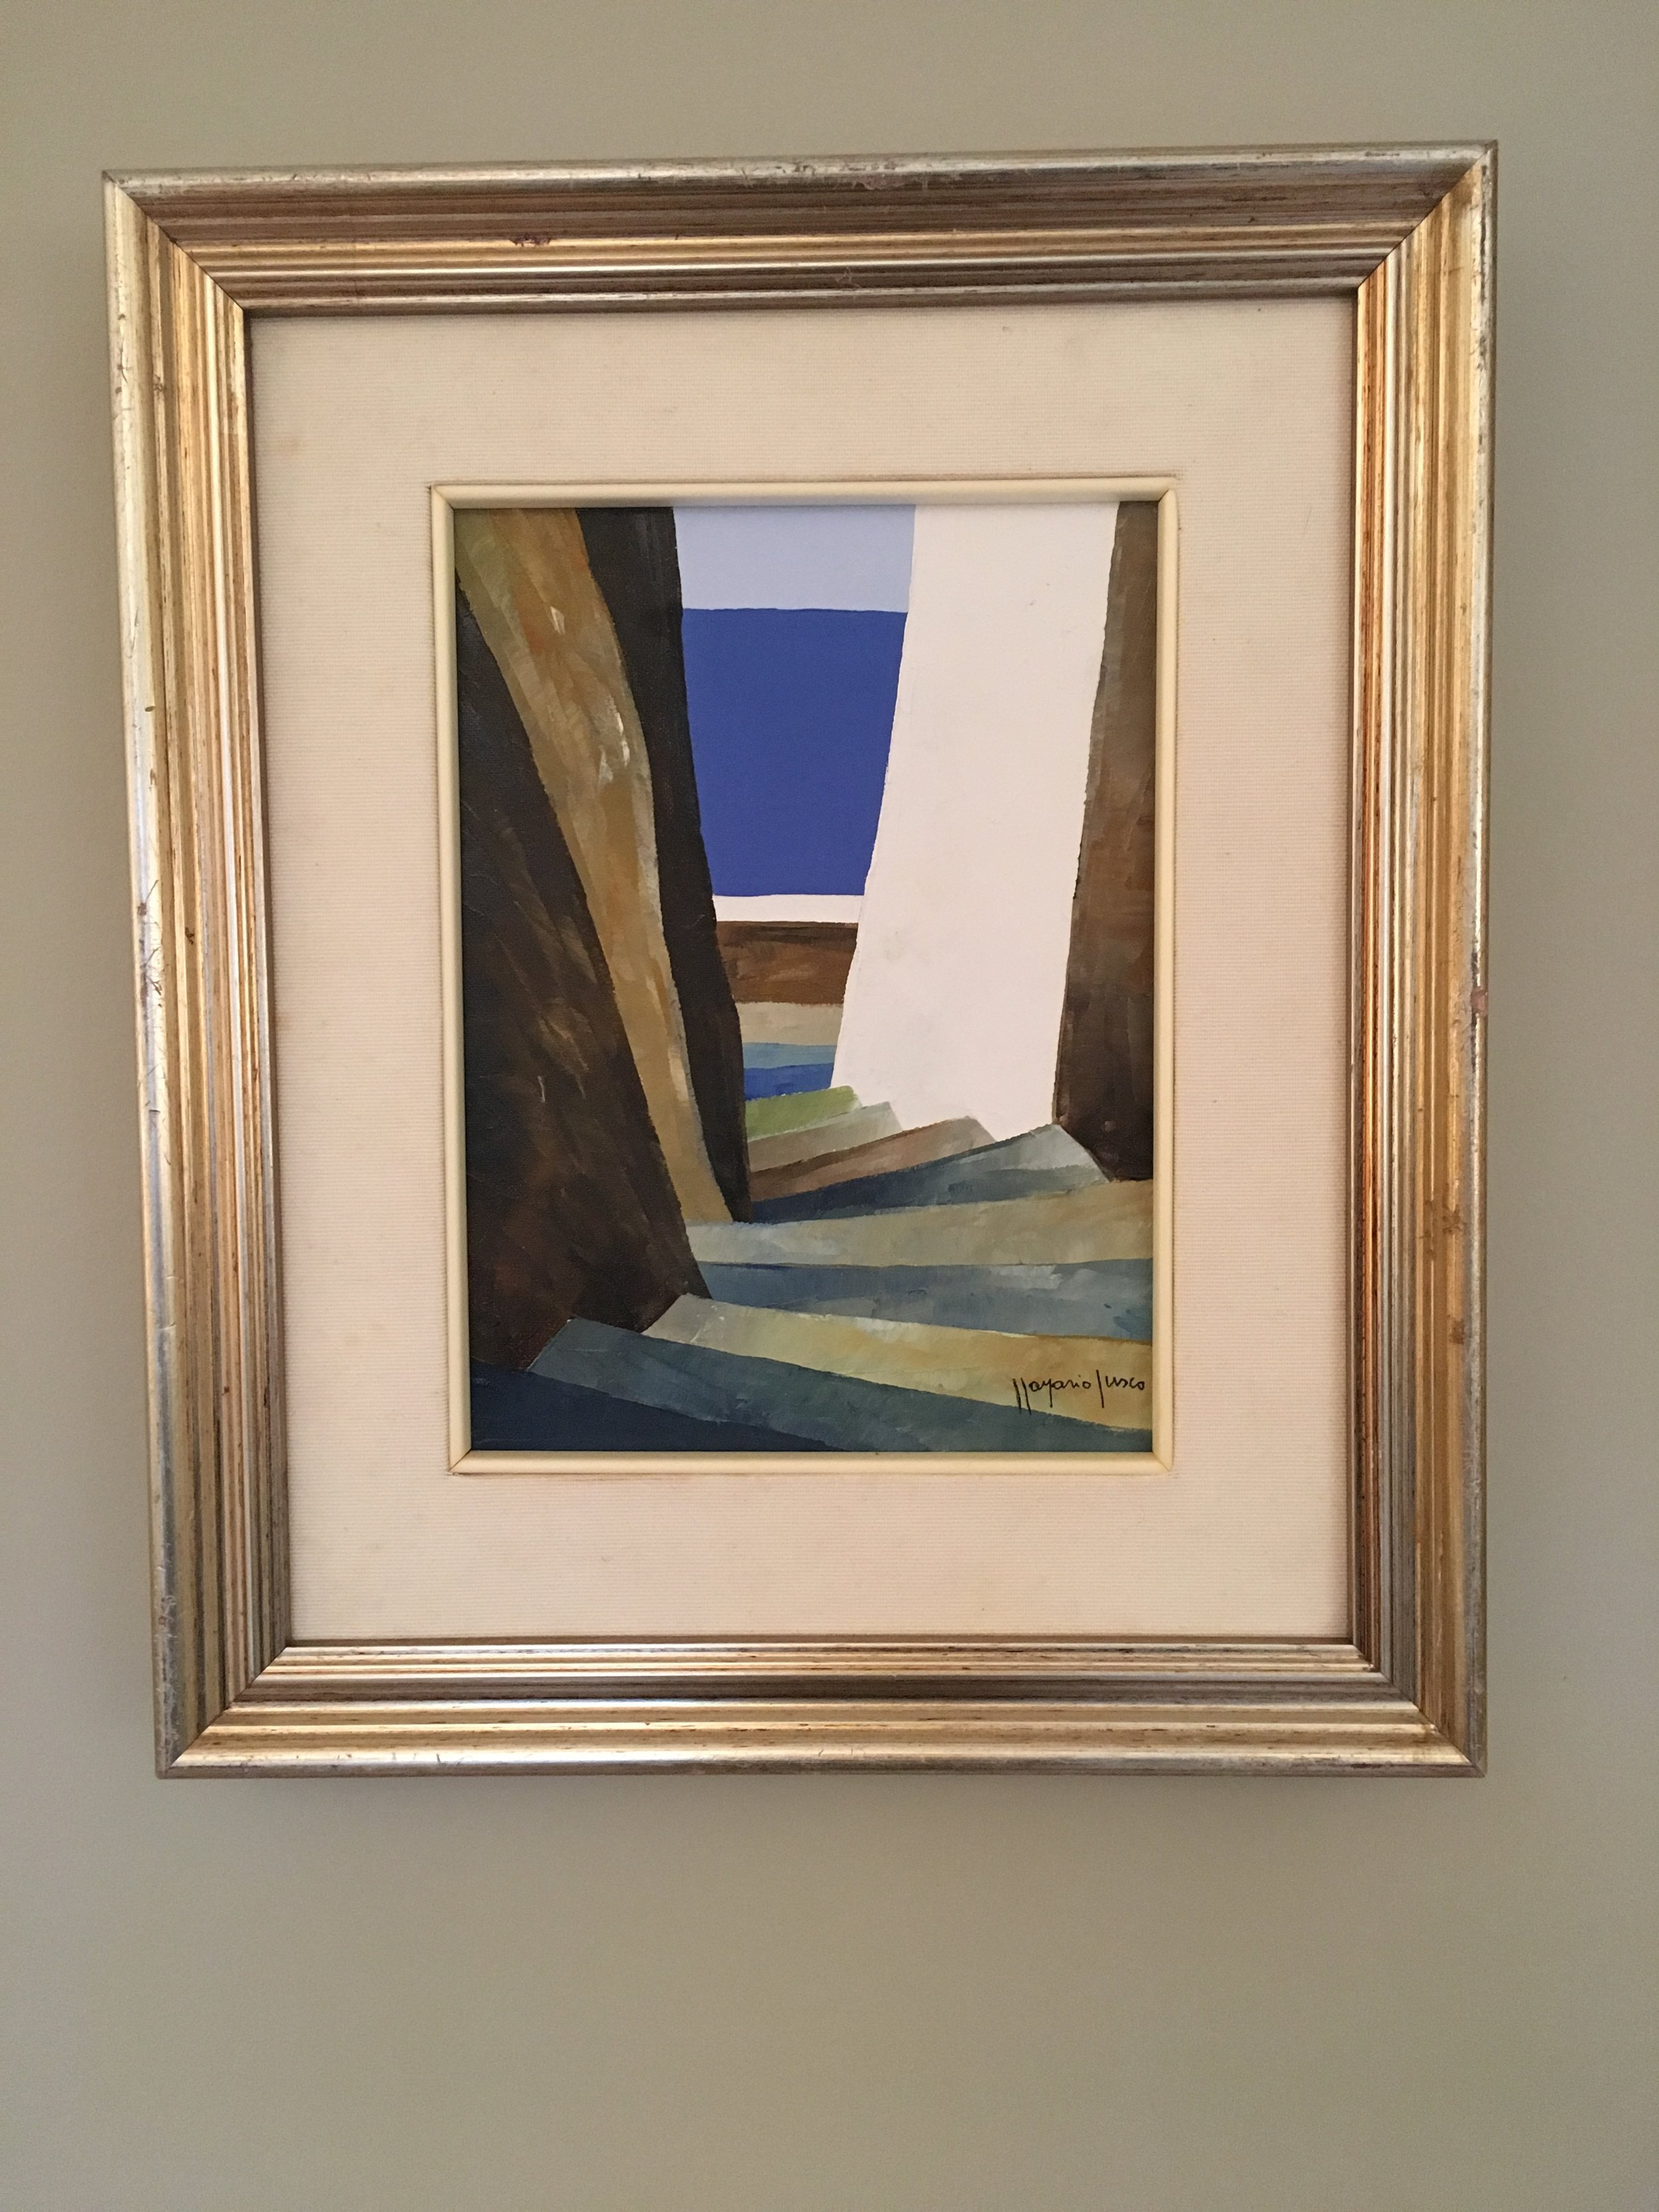 From the couple's collection: an oil painting acquired on a trip to Europe. Love the colors and composition (No pressure!)